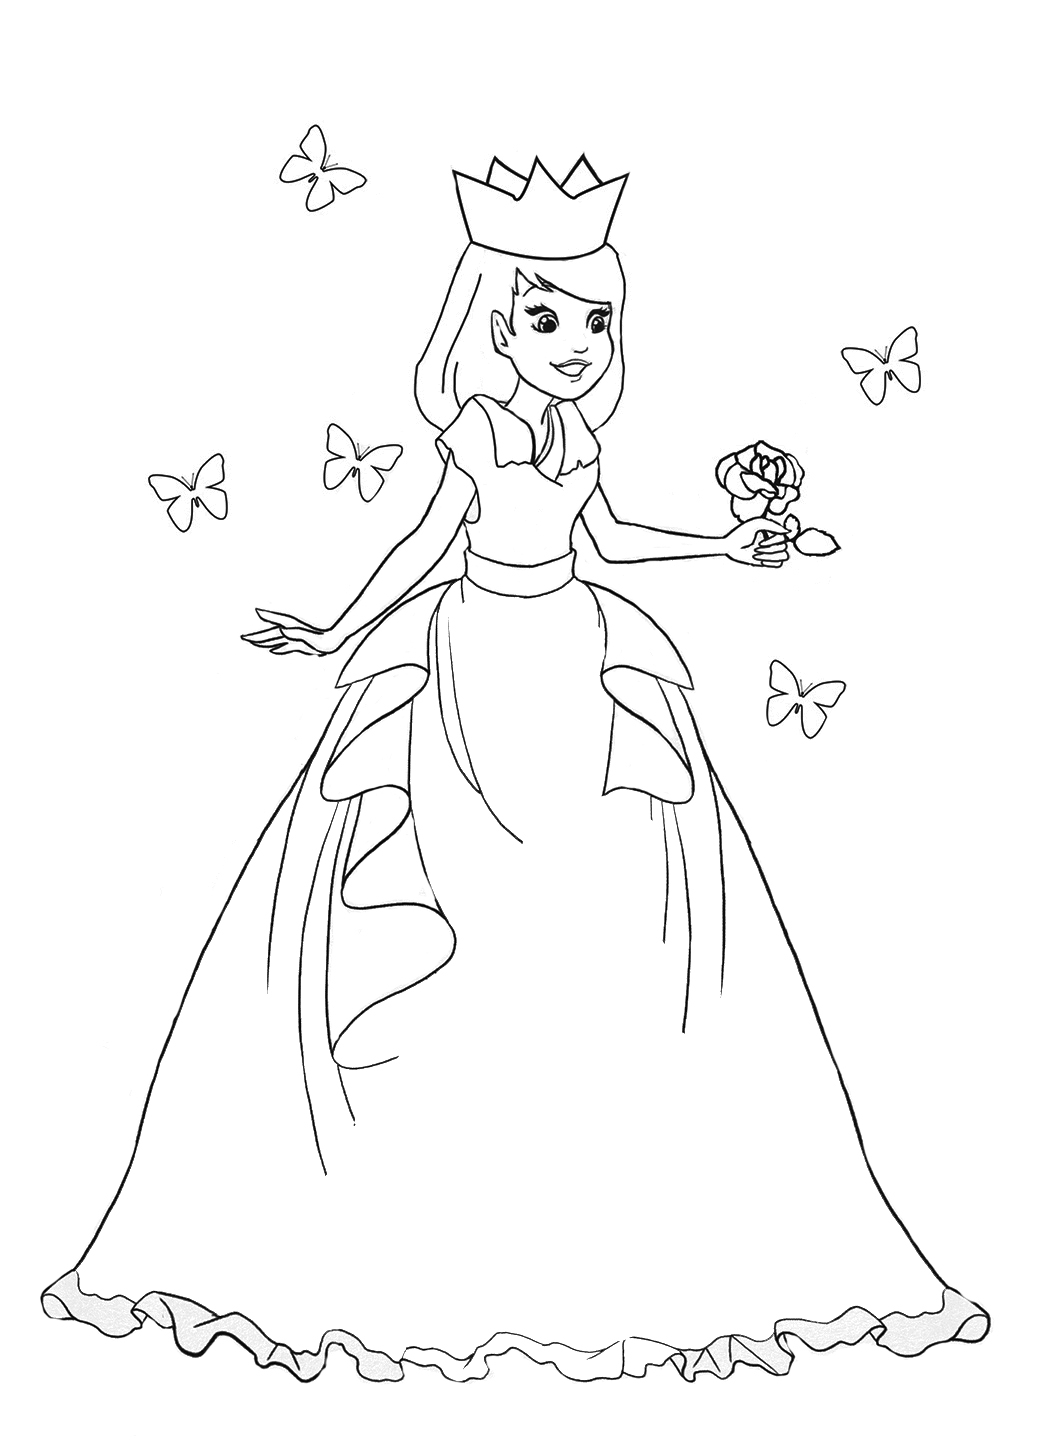 Princess coloring sheet butterfly roses